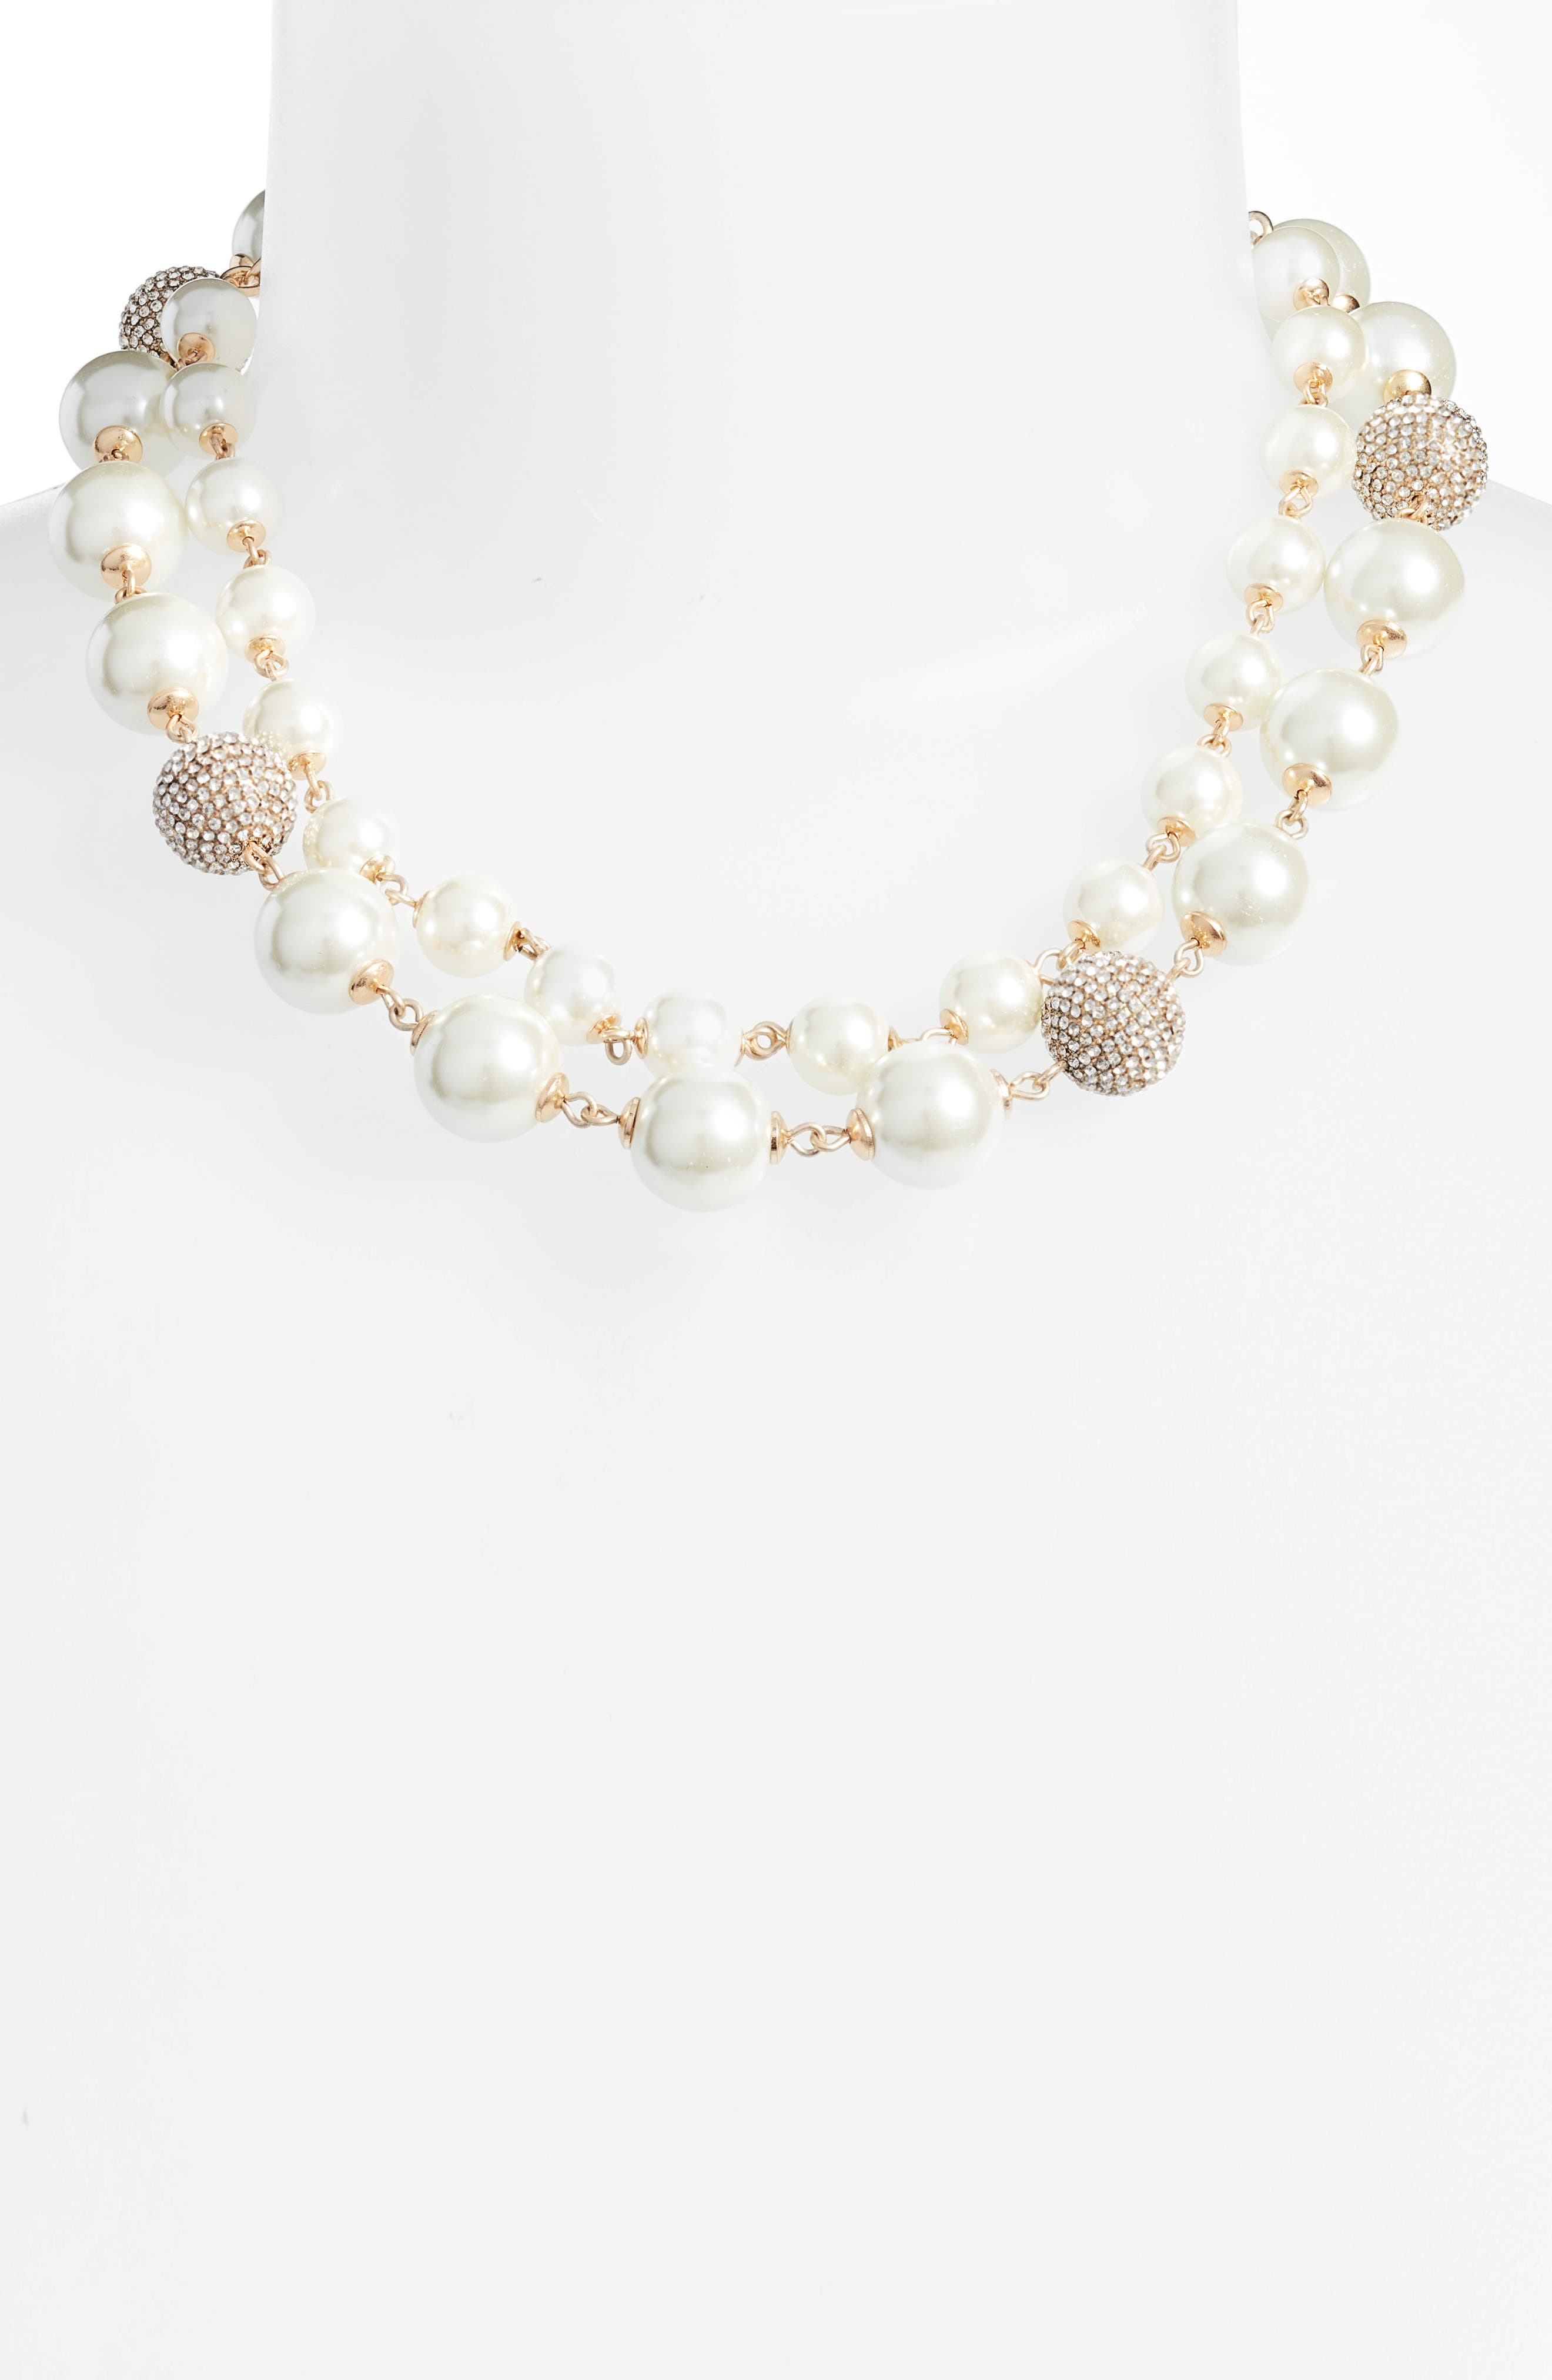 Multistrand Imitation Pearl Necklace,                             Alternate thumbnail 2, color,                             710